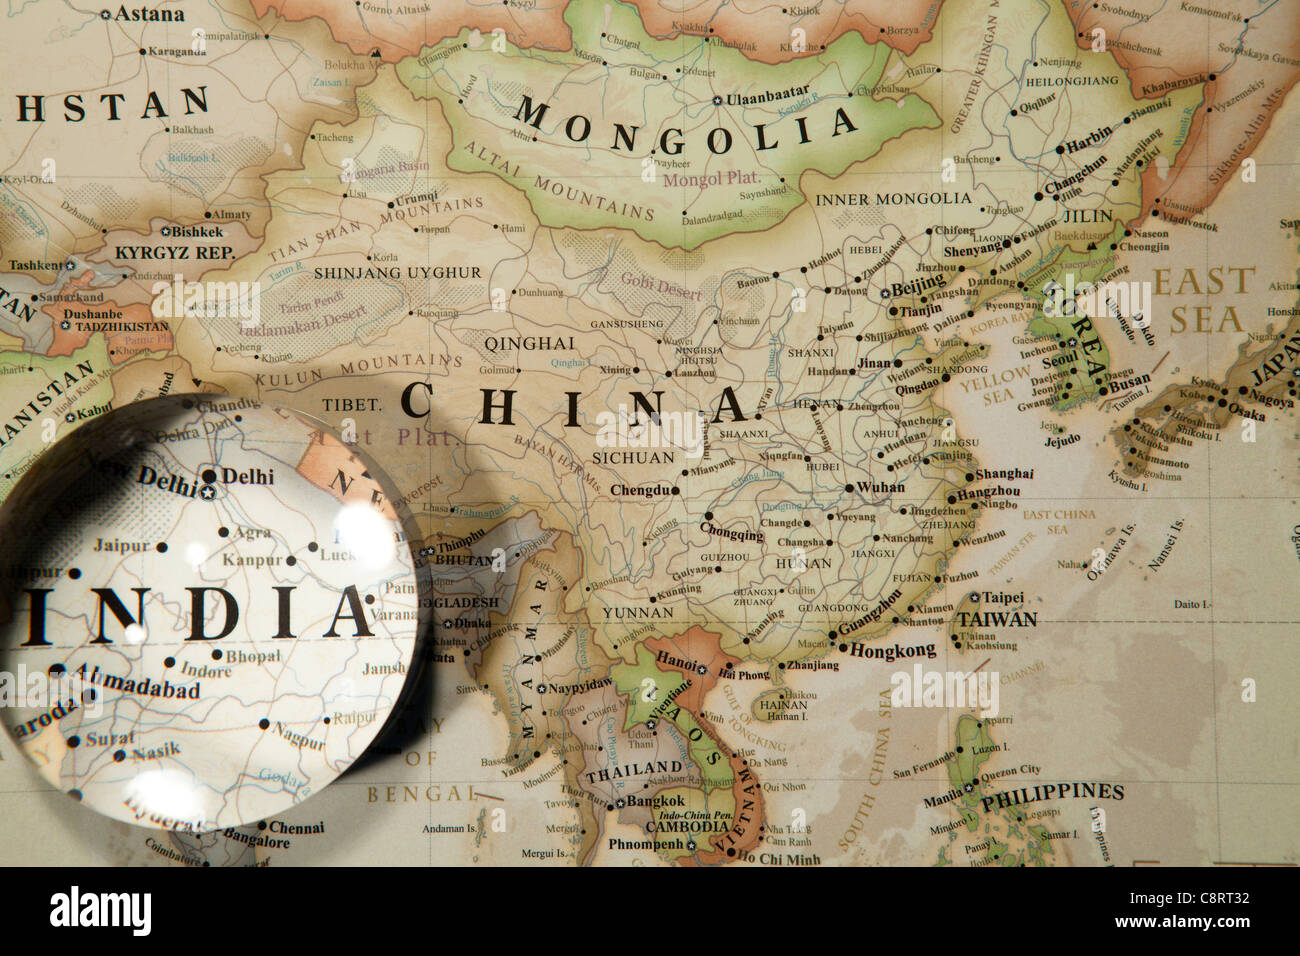 Close Up Of Asian Continent World Map With Crystal Ball Stock Photo